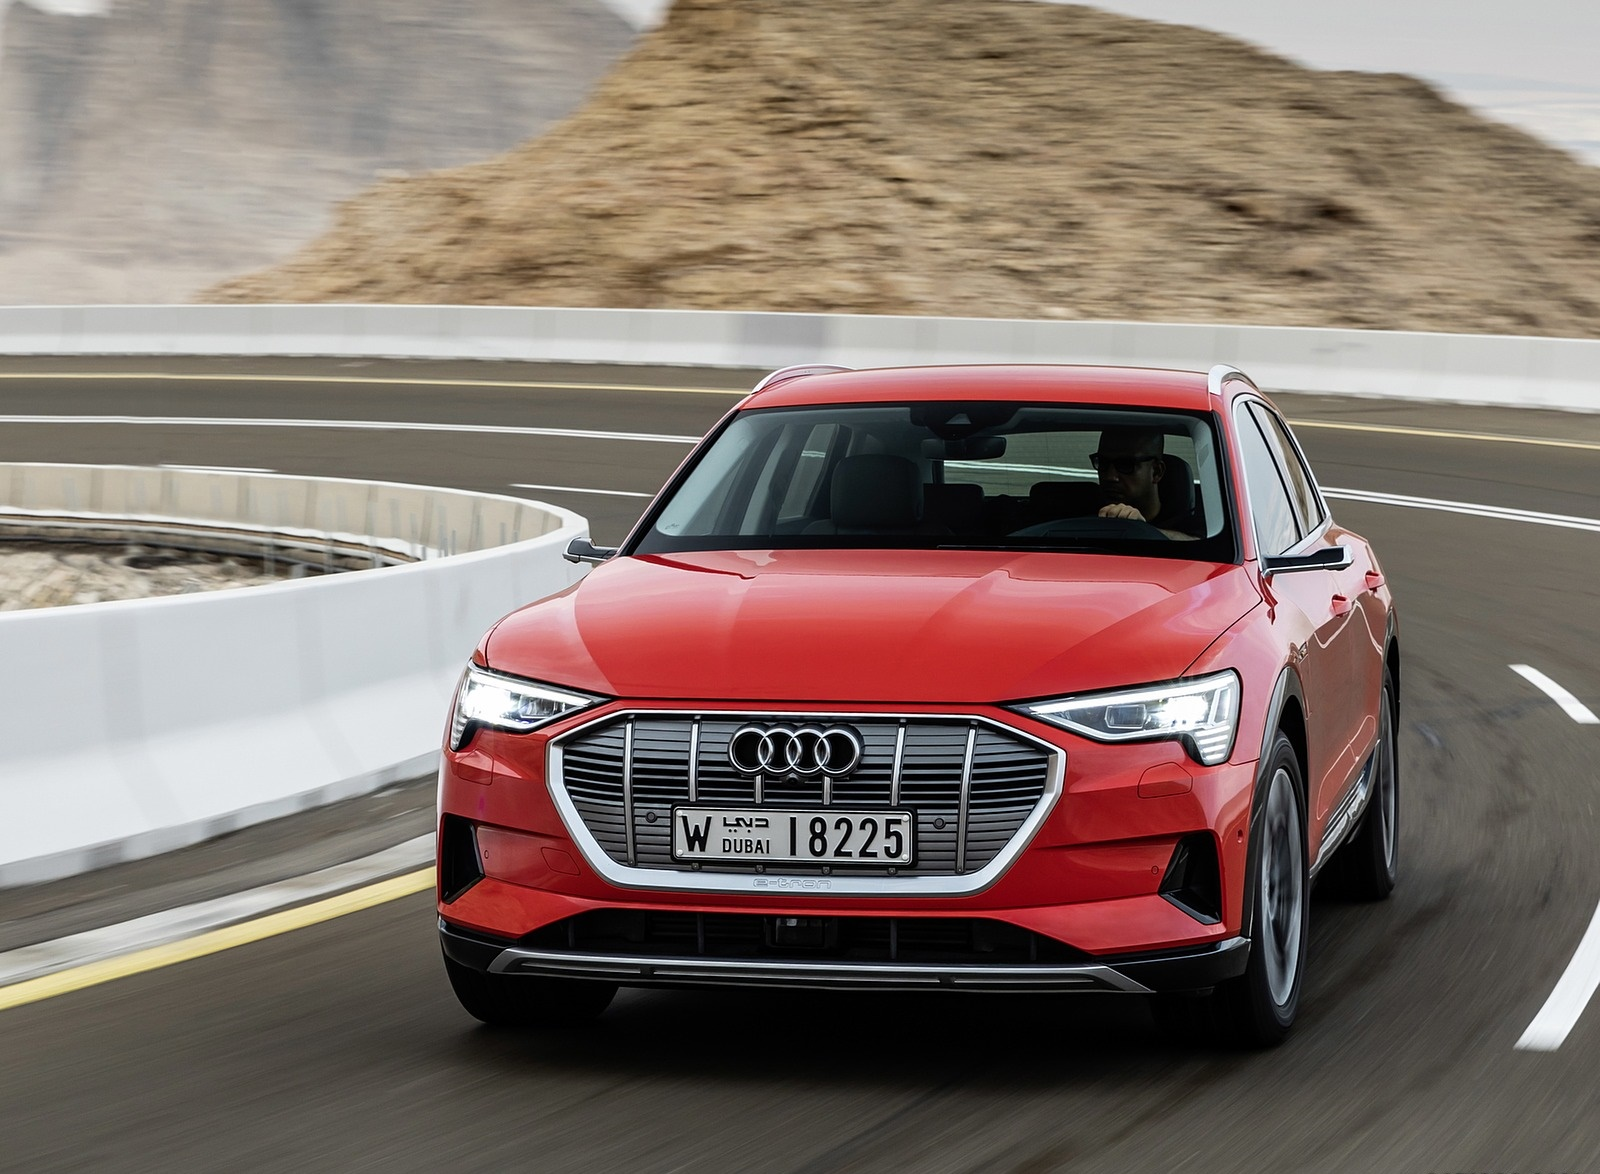 2019 Audi e-tron (Color: Catalunya Red) Front Wallpapers #1 of 234